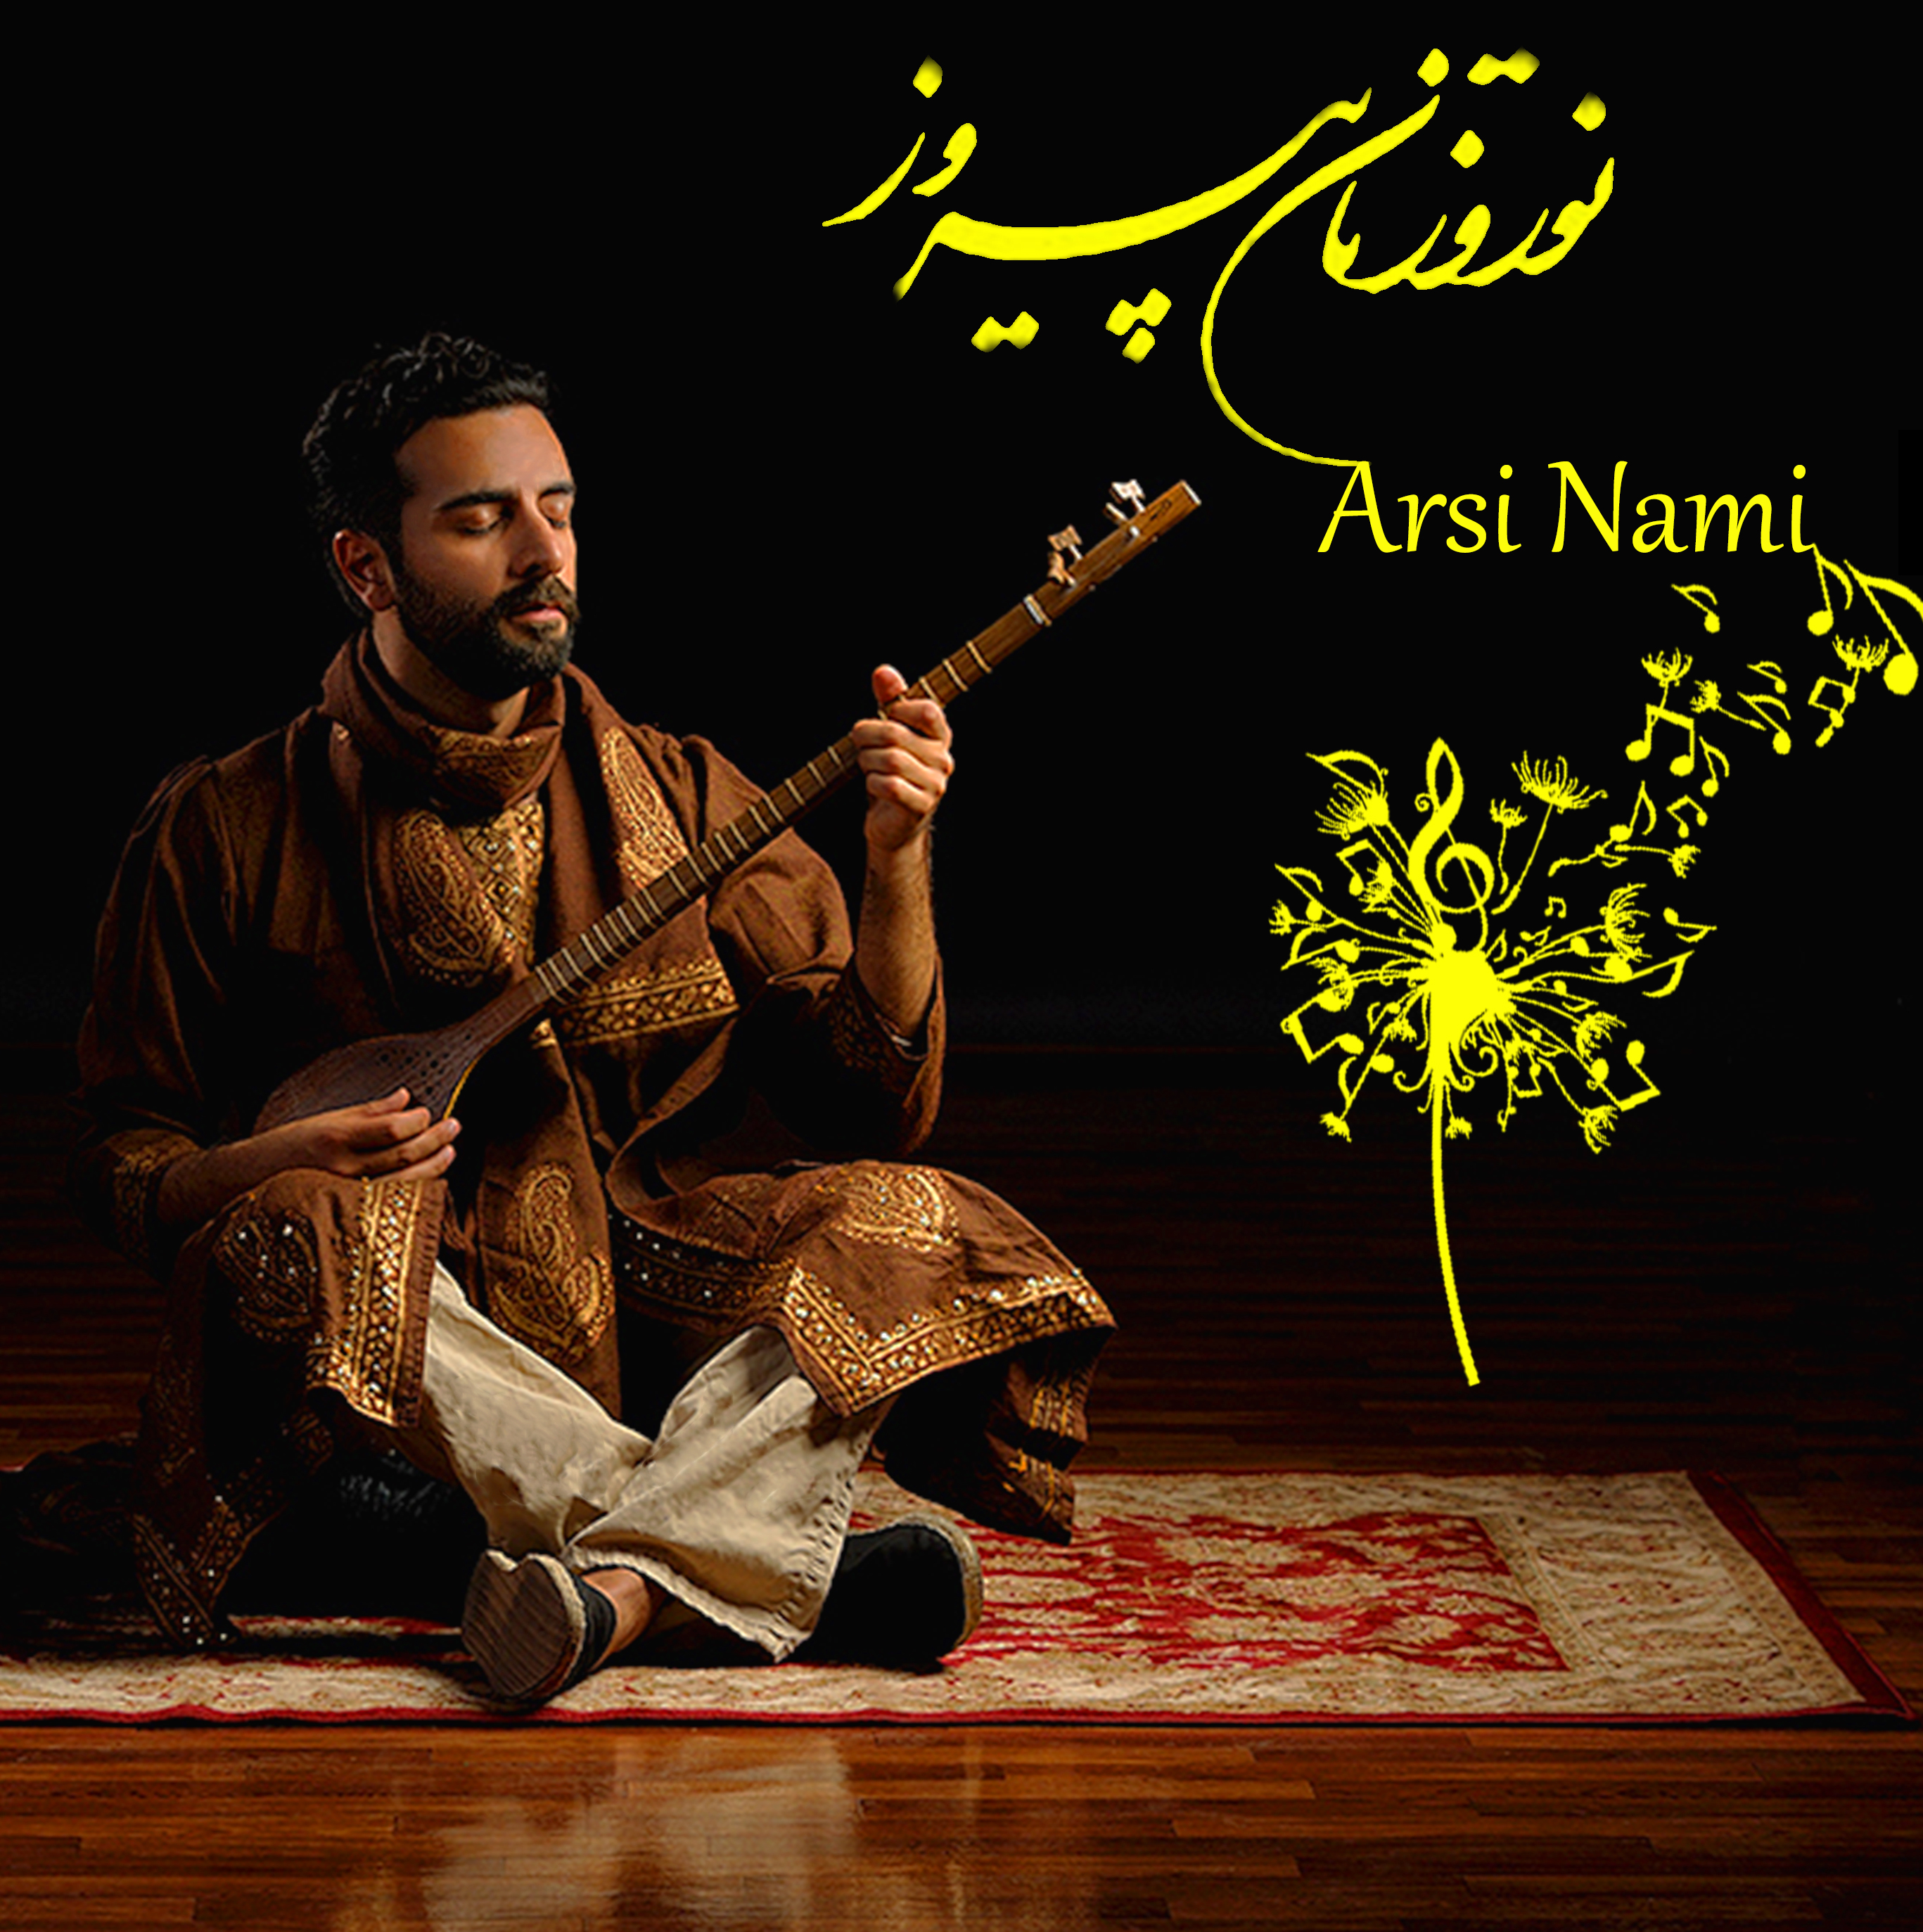 Still of Arsi Nami playing sitar